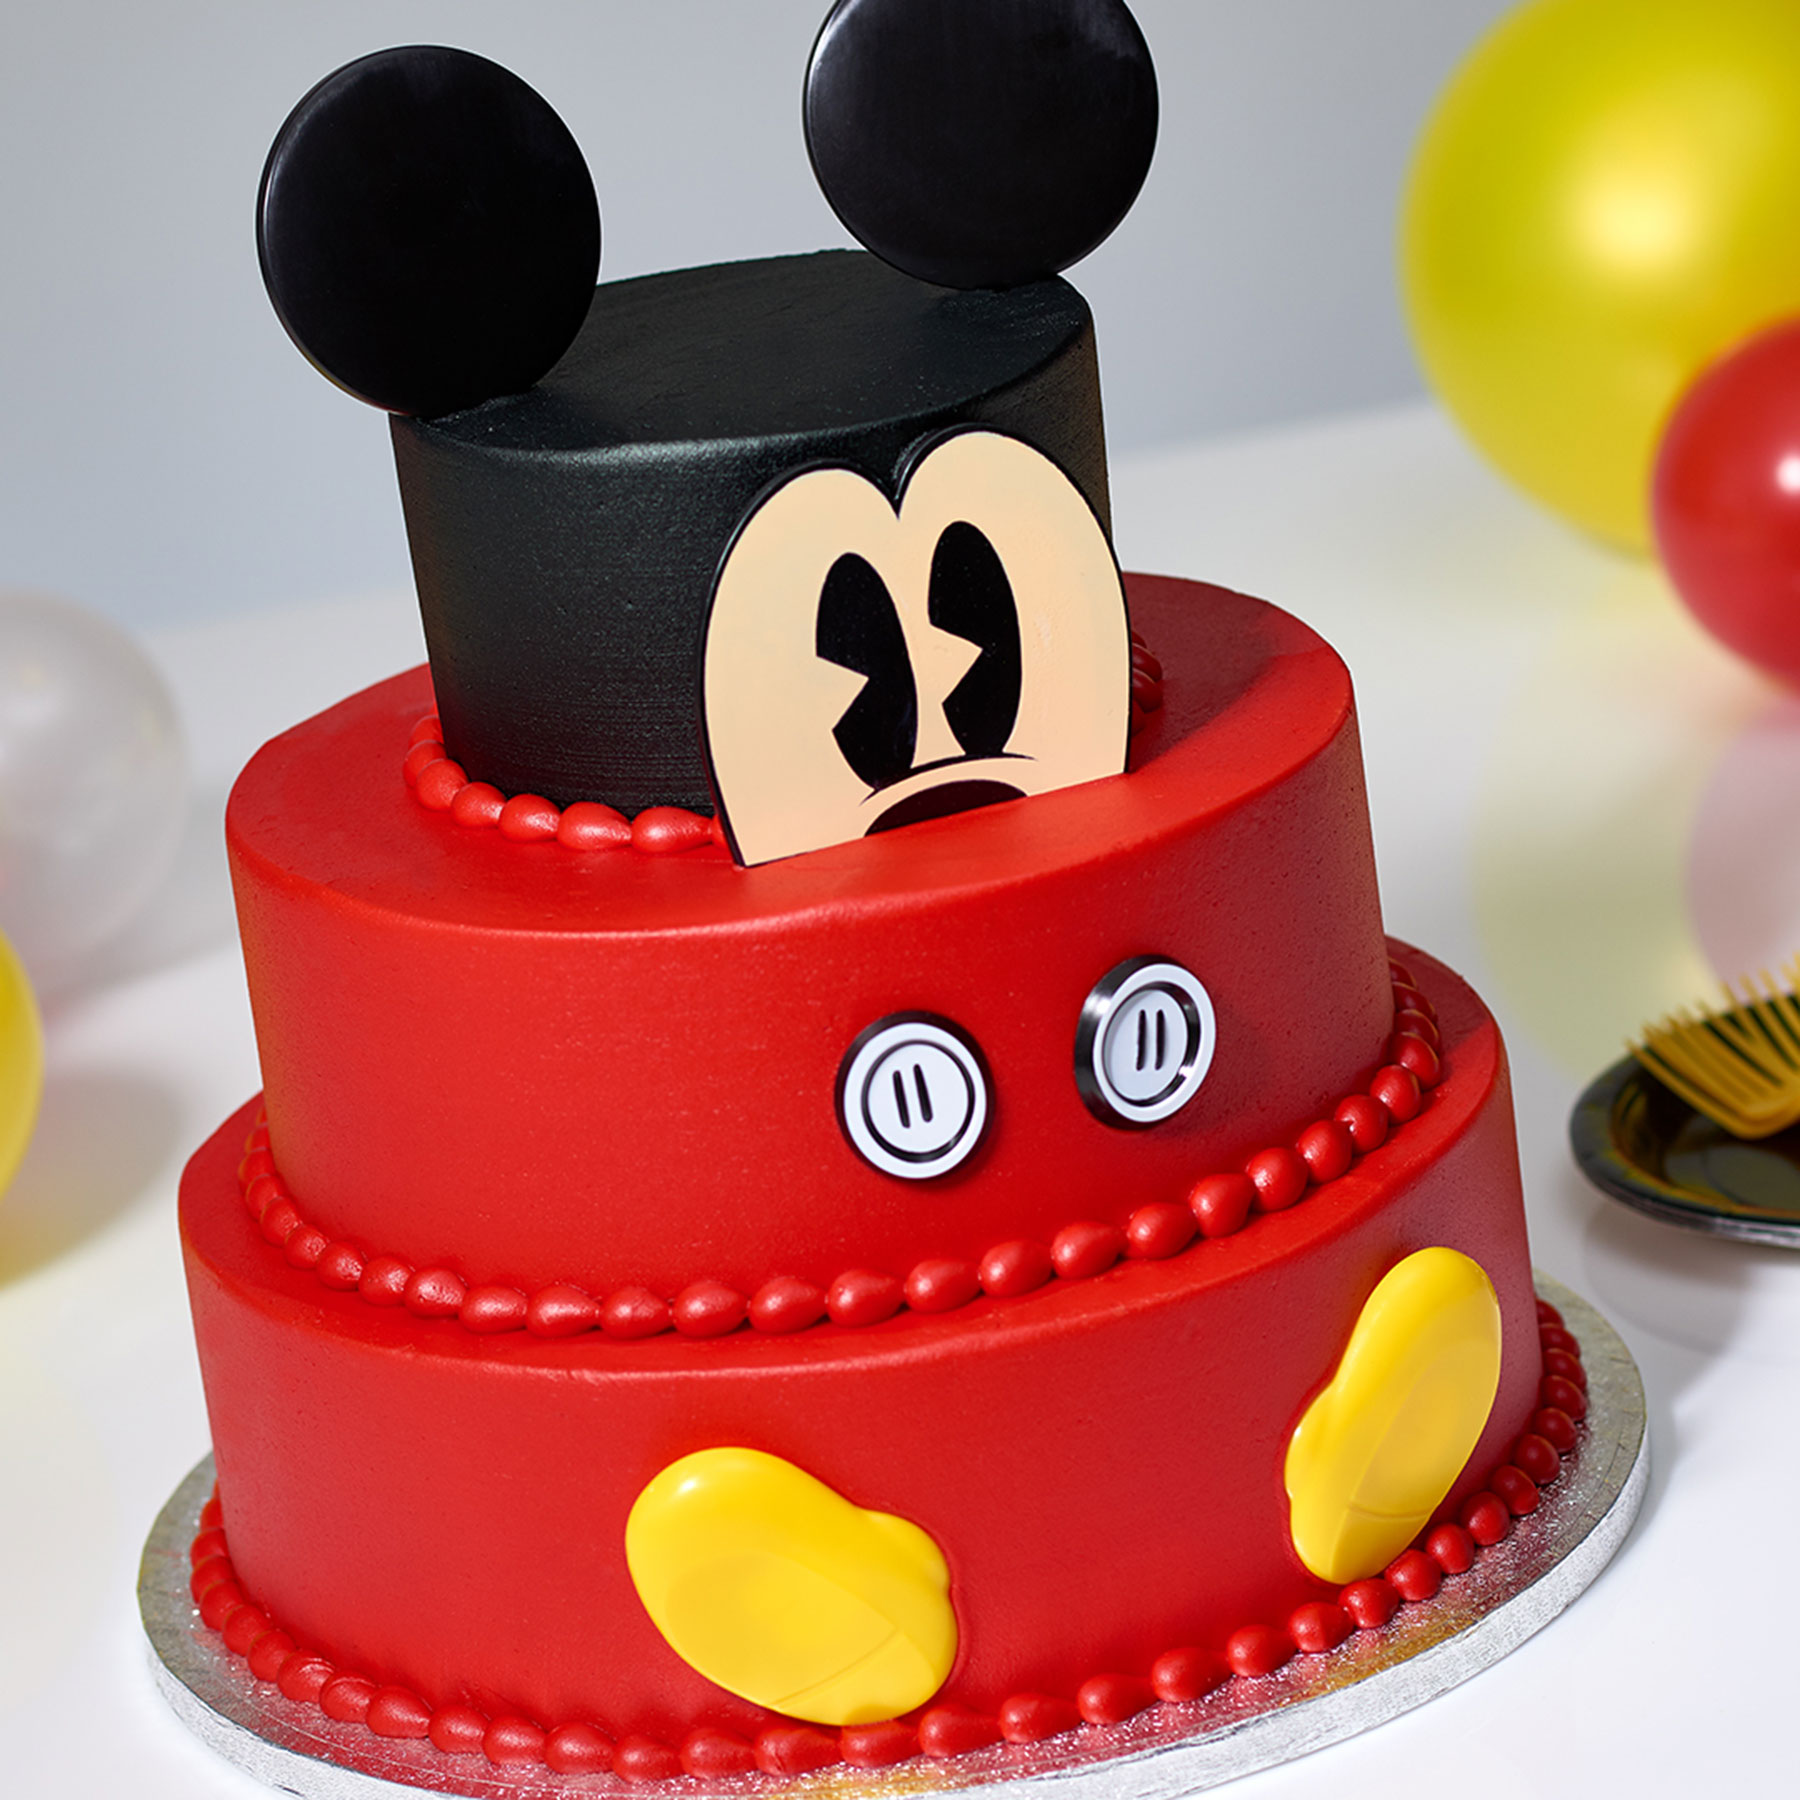 Sam's Club Is Selling 3-Tier Mickey Mouse Cakes for the Character's 90th Birthday